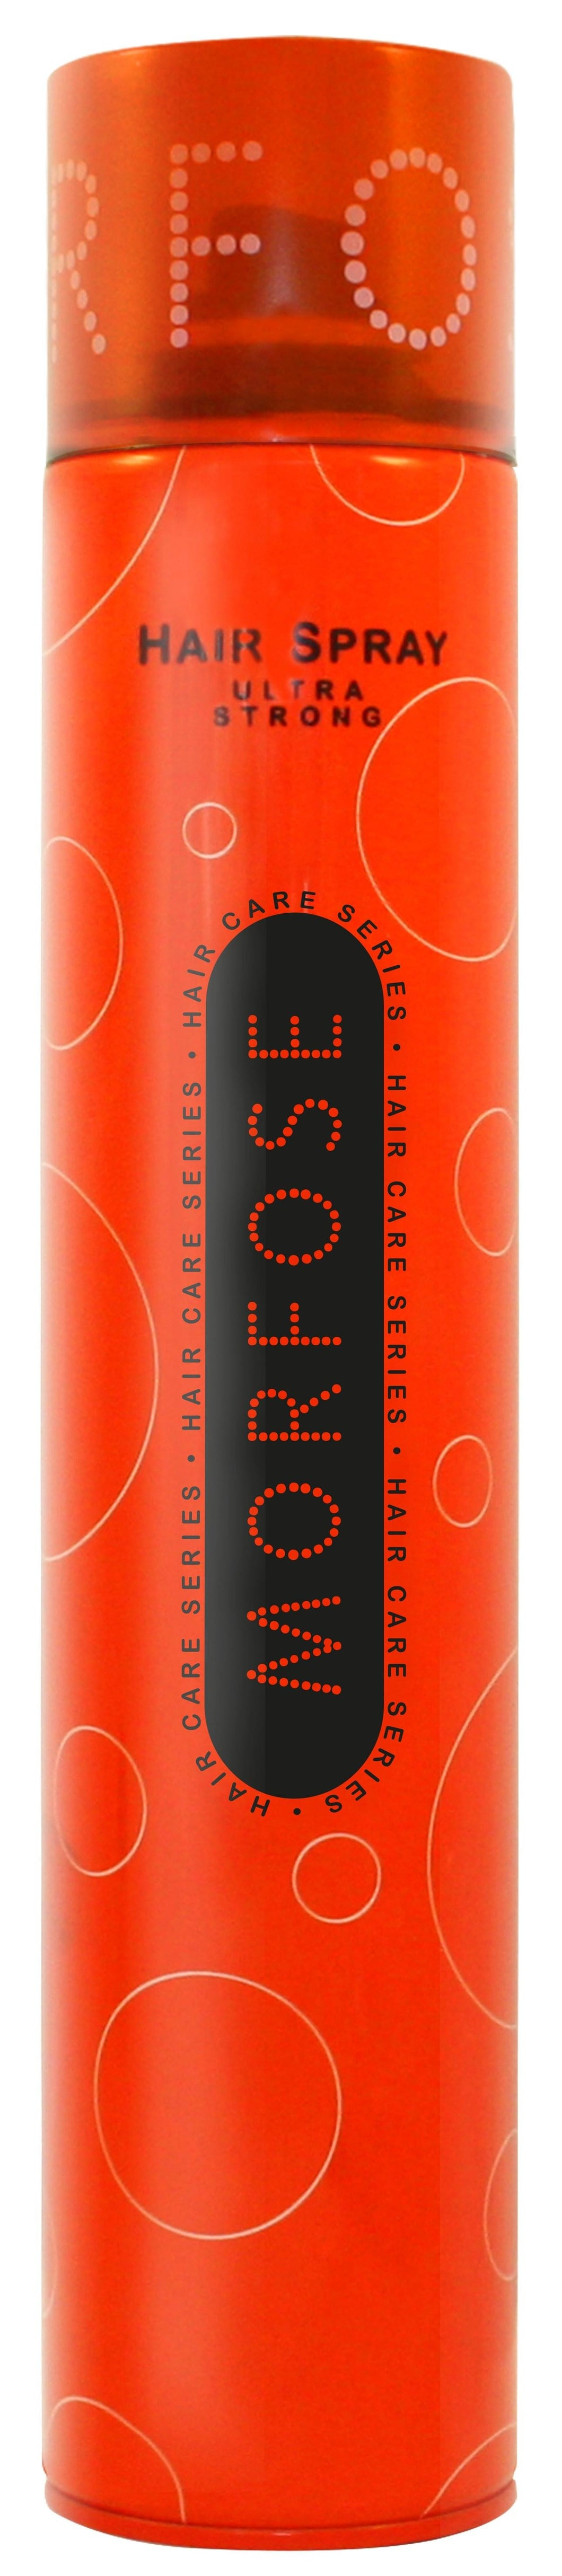 Morfose Hairspray 400ml - Ultra Strong Hold - MorfoseUK